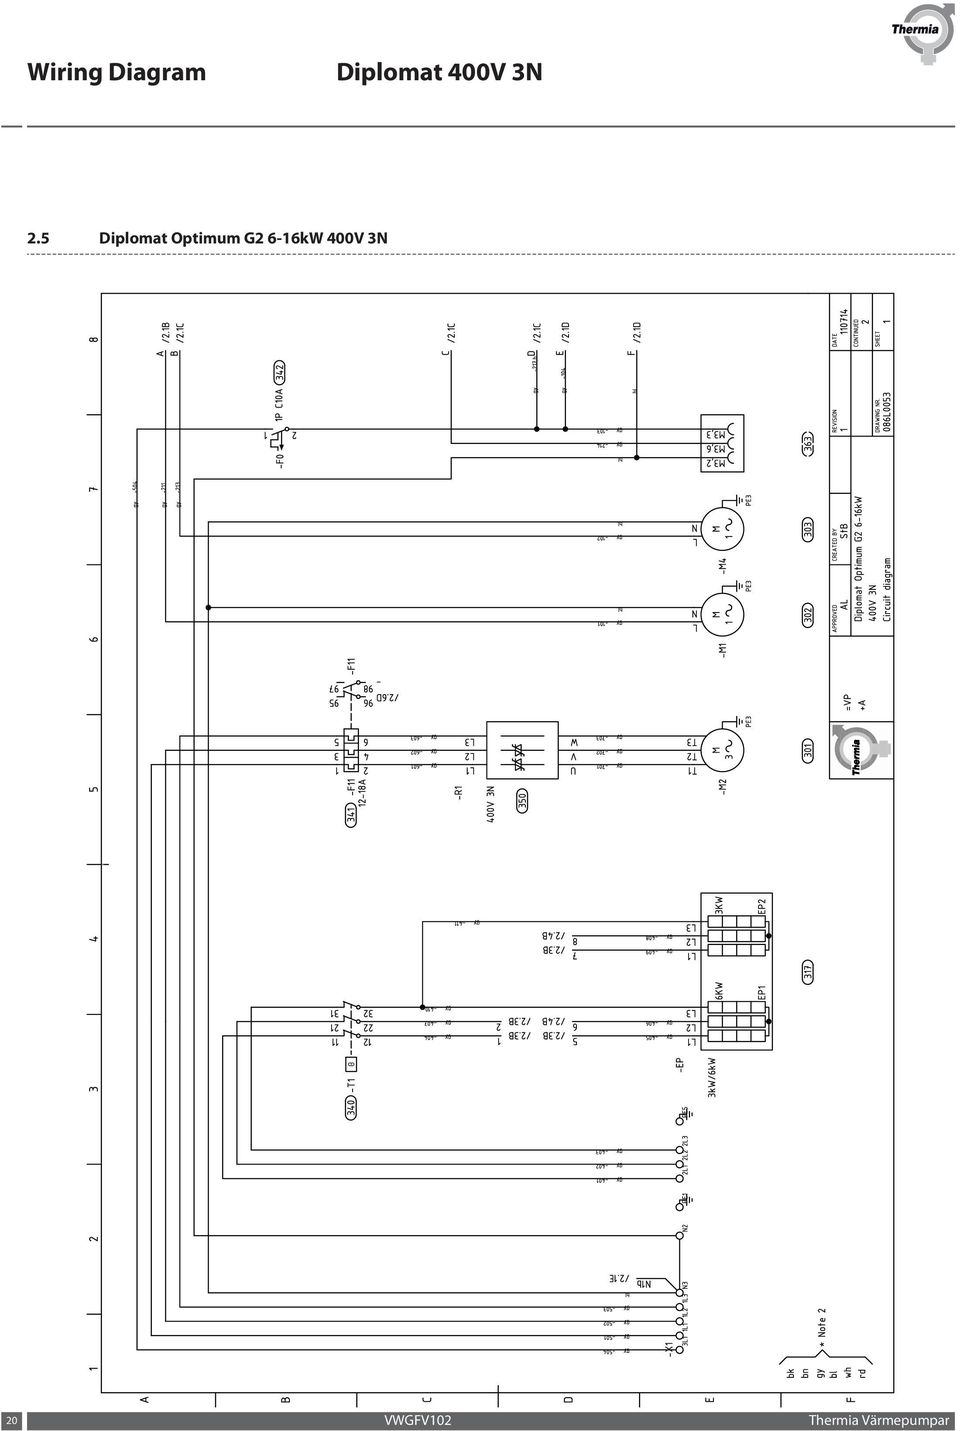 Optimum Wiring Diagrams Electrical Time Warner Diagram Diplomat 400v 3n Pdf Cable